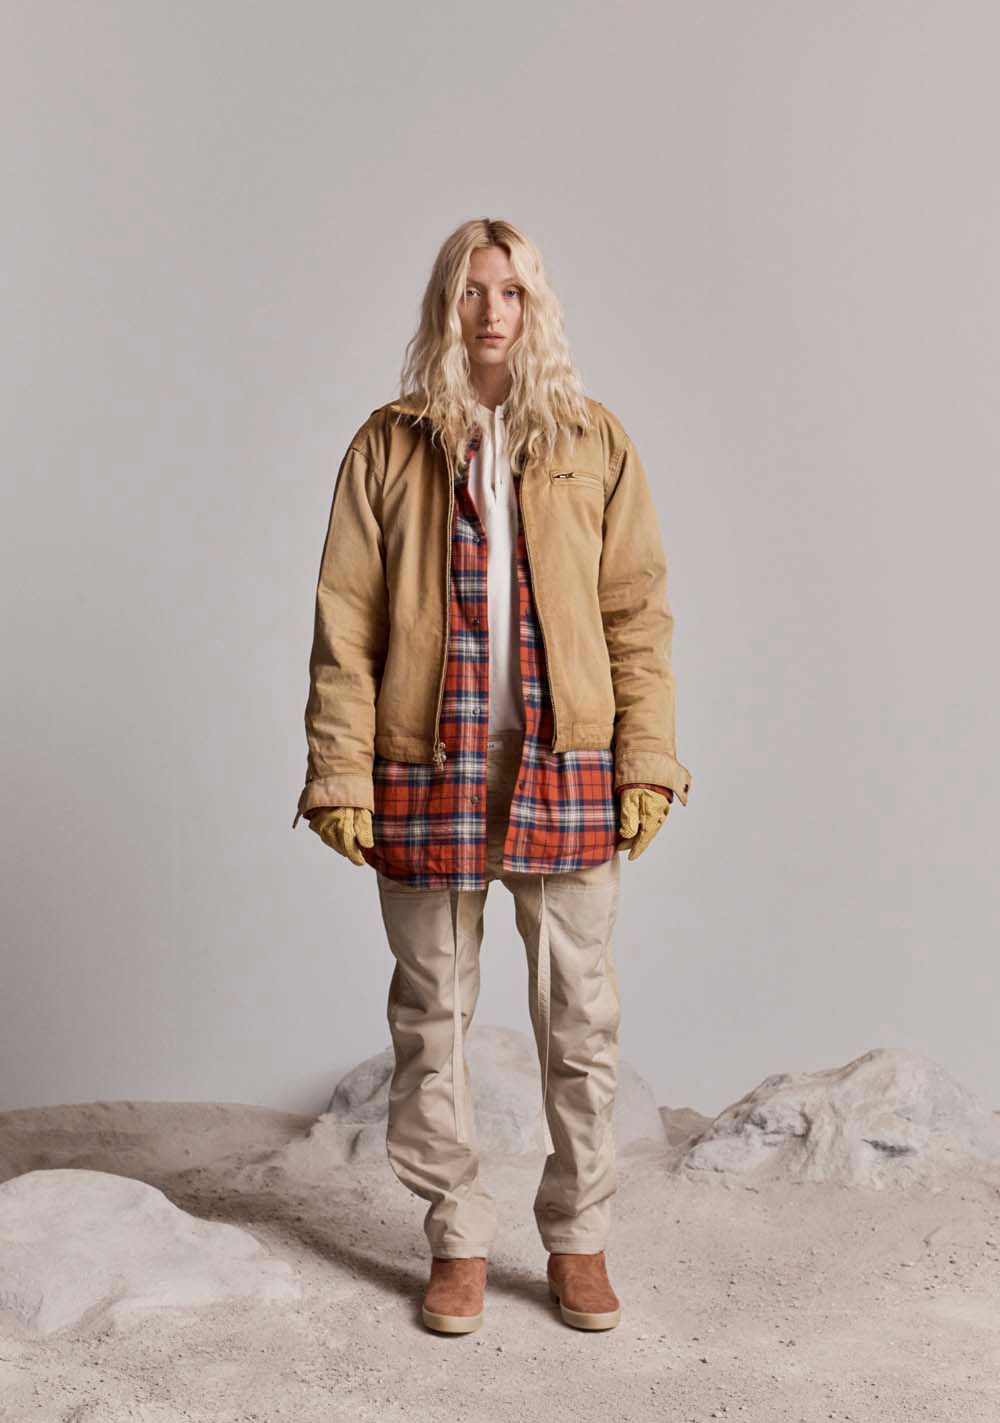 https_%2F%2Fhypebeast.com%2Fimage%2F2018%2F09%2Ffear-of-god-6-sixth-collection-jared-leto-nike-33.jpg